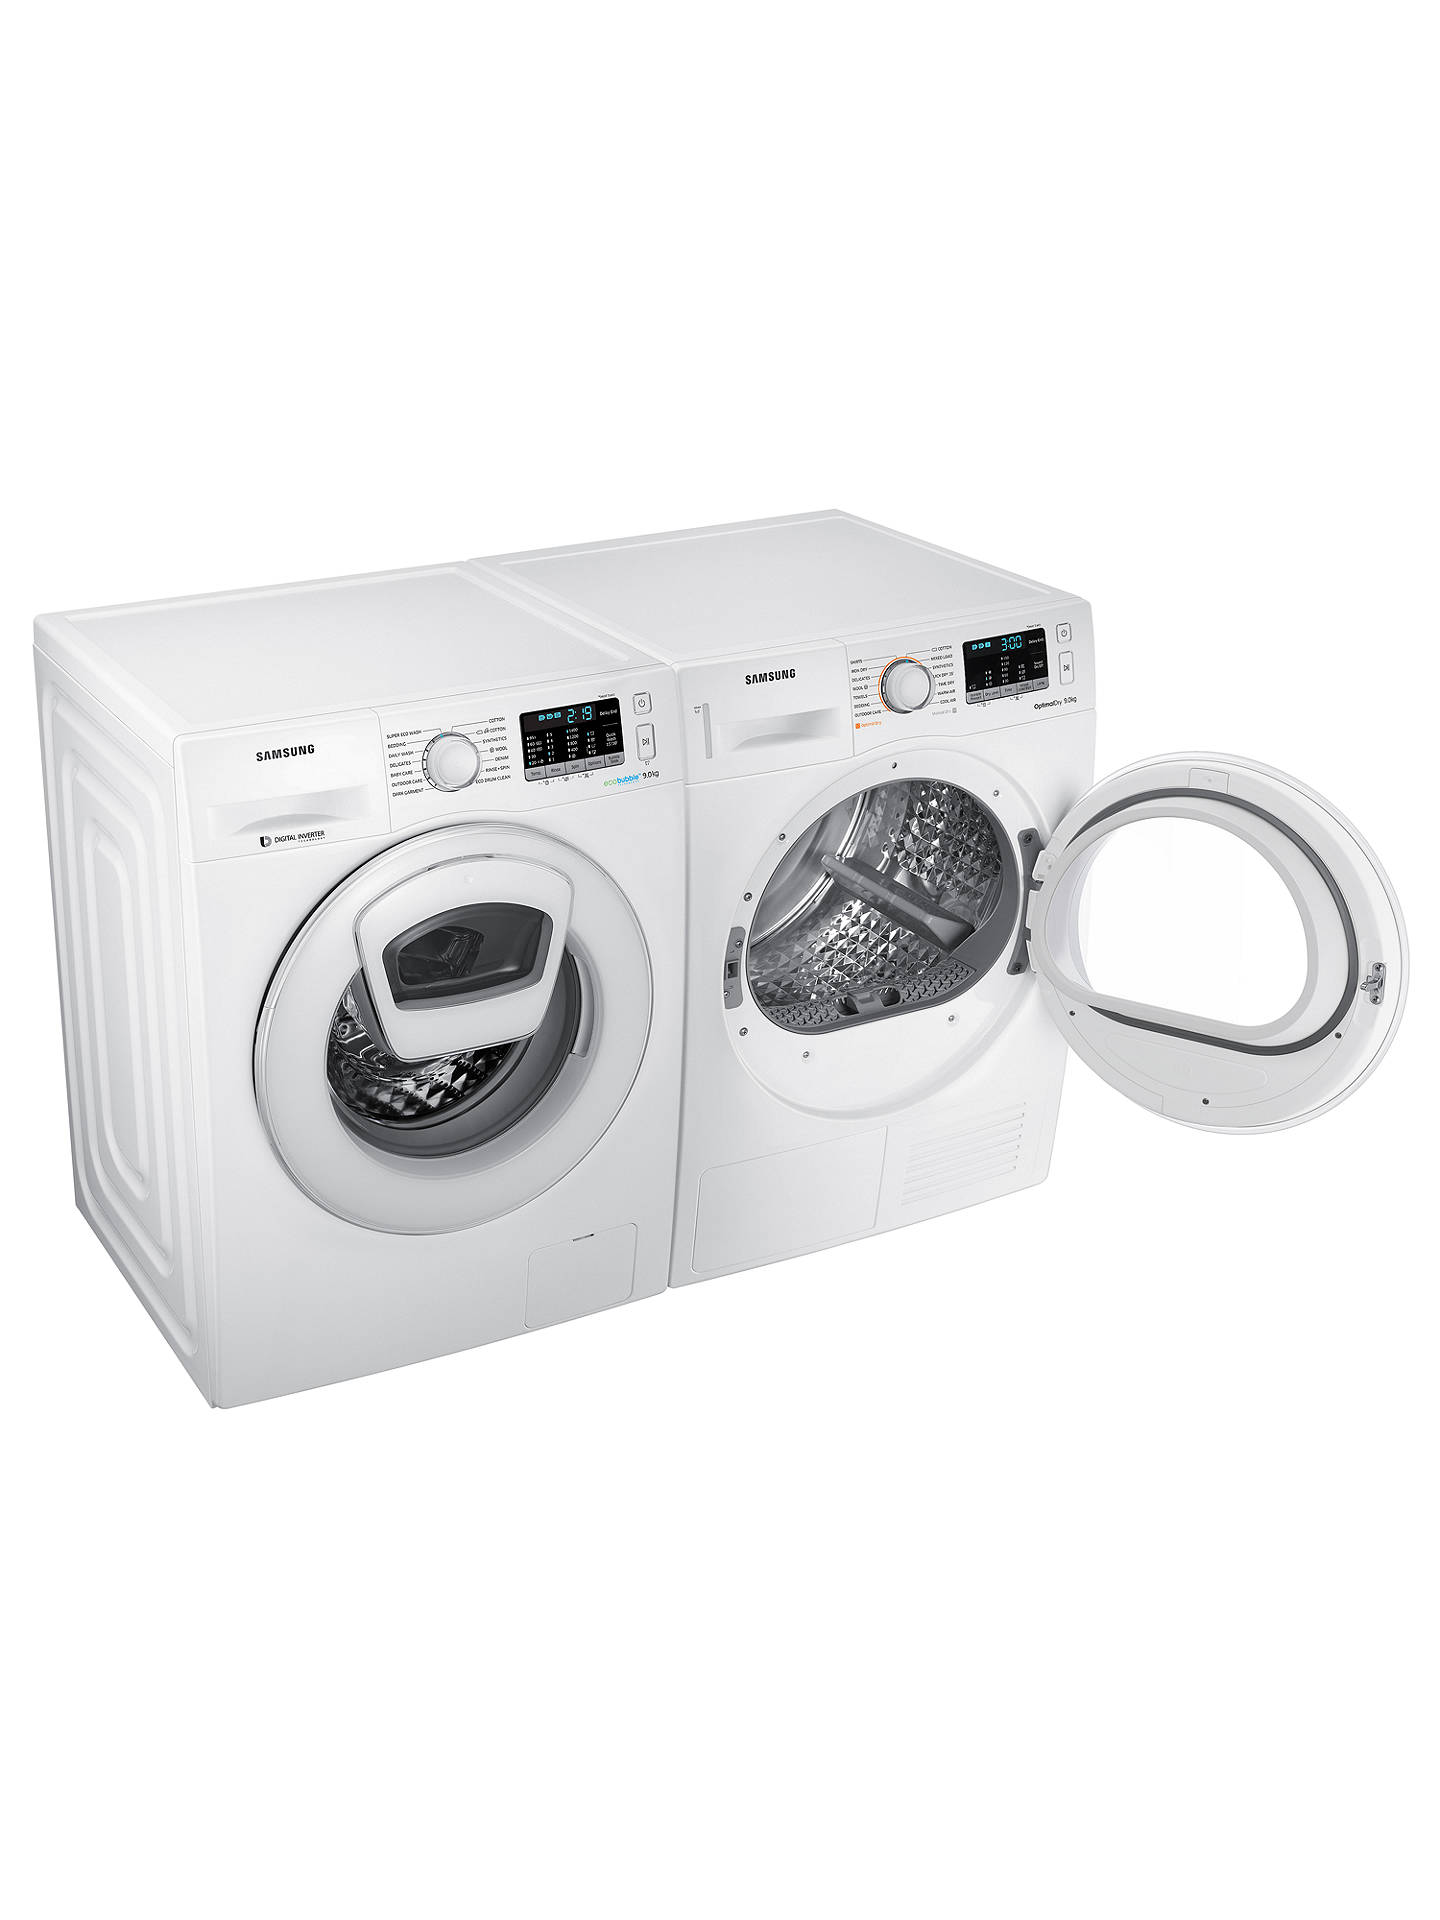 BuySamsung DV90M5000IW/EU Condenser Tumble Dryer with Heat Pump, 9kg Load, A++ Energy Rating, White Online at johnlewis.com